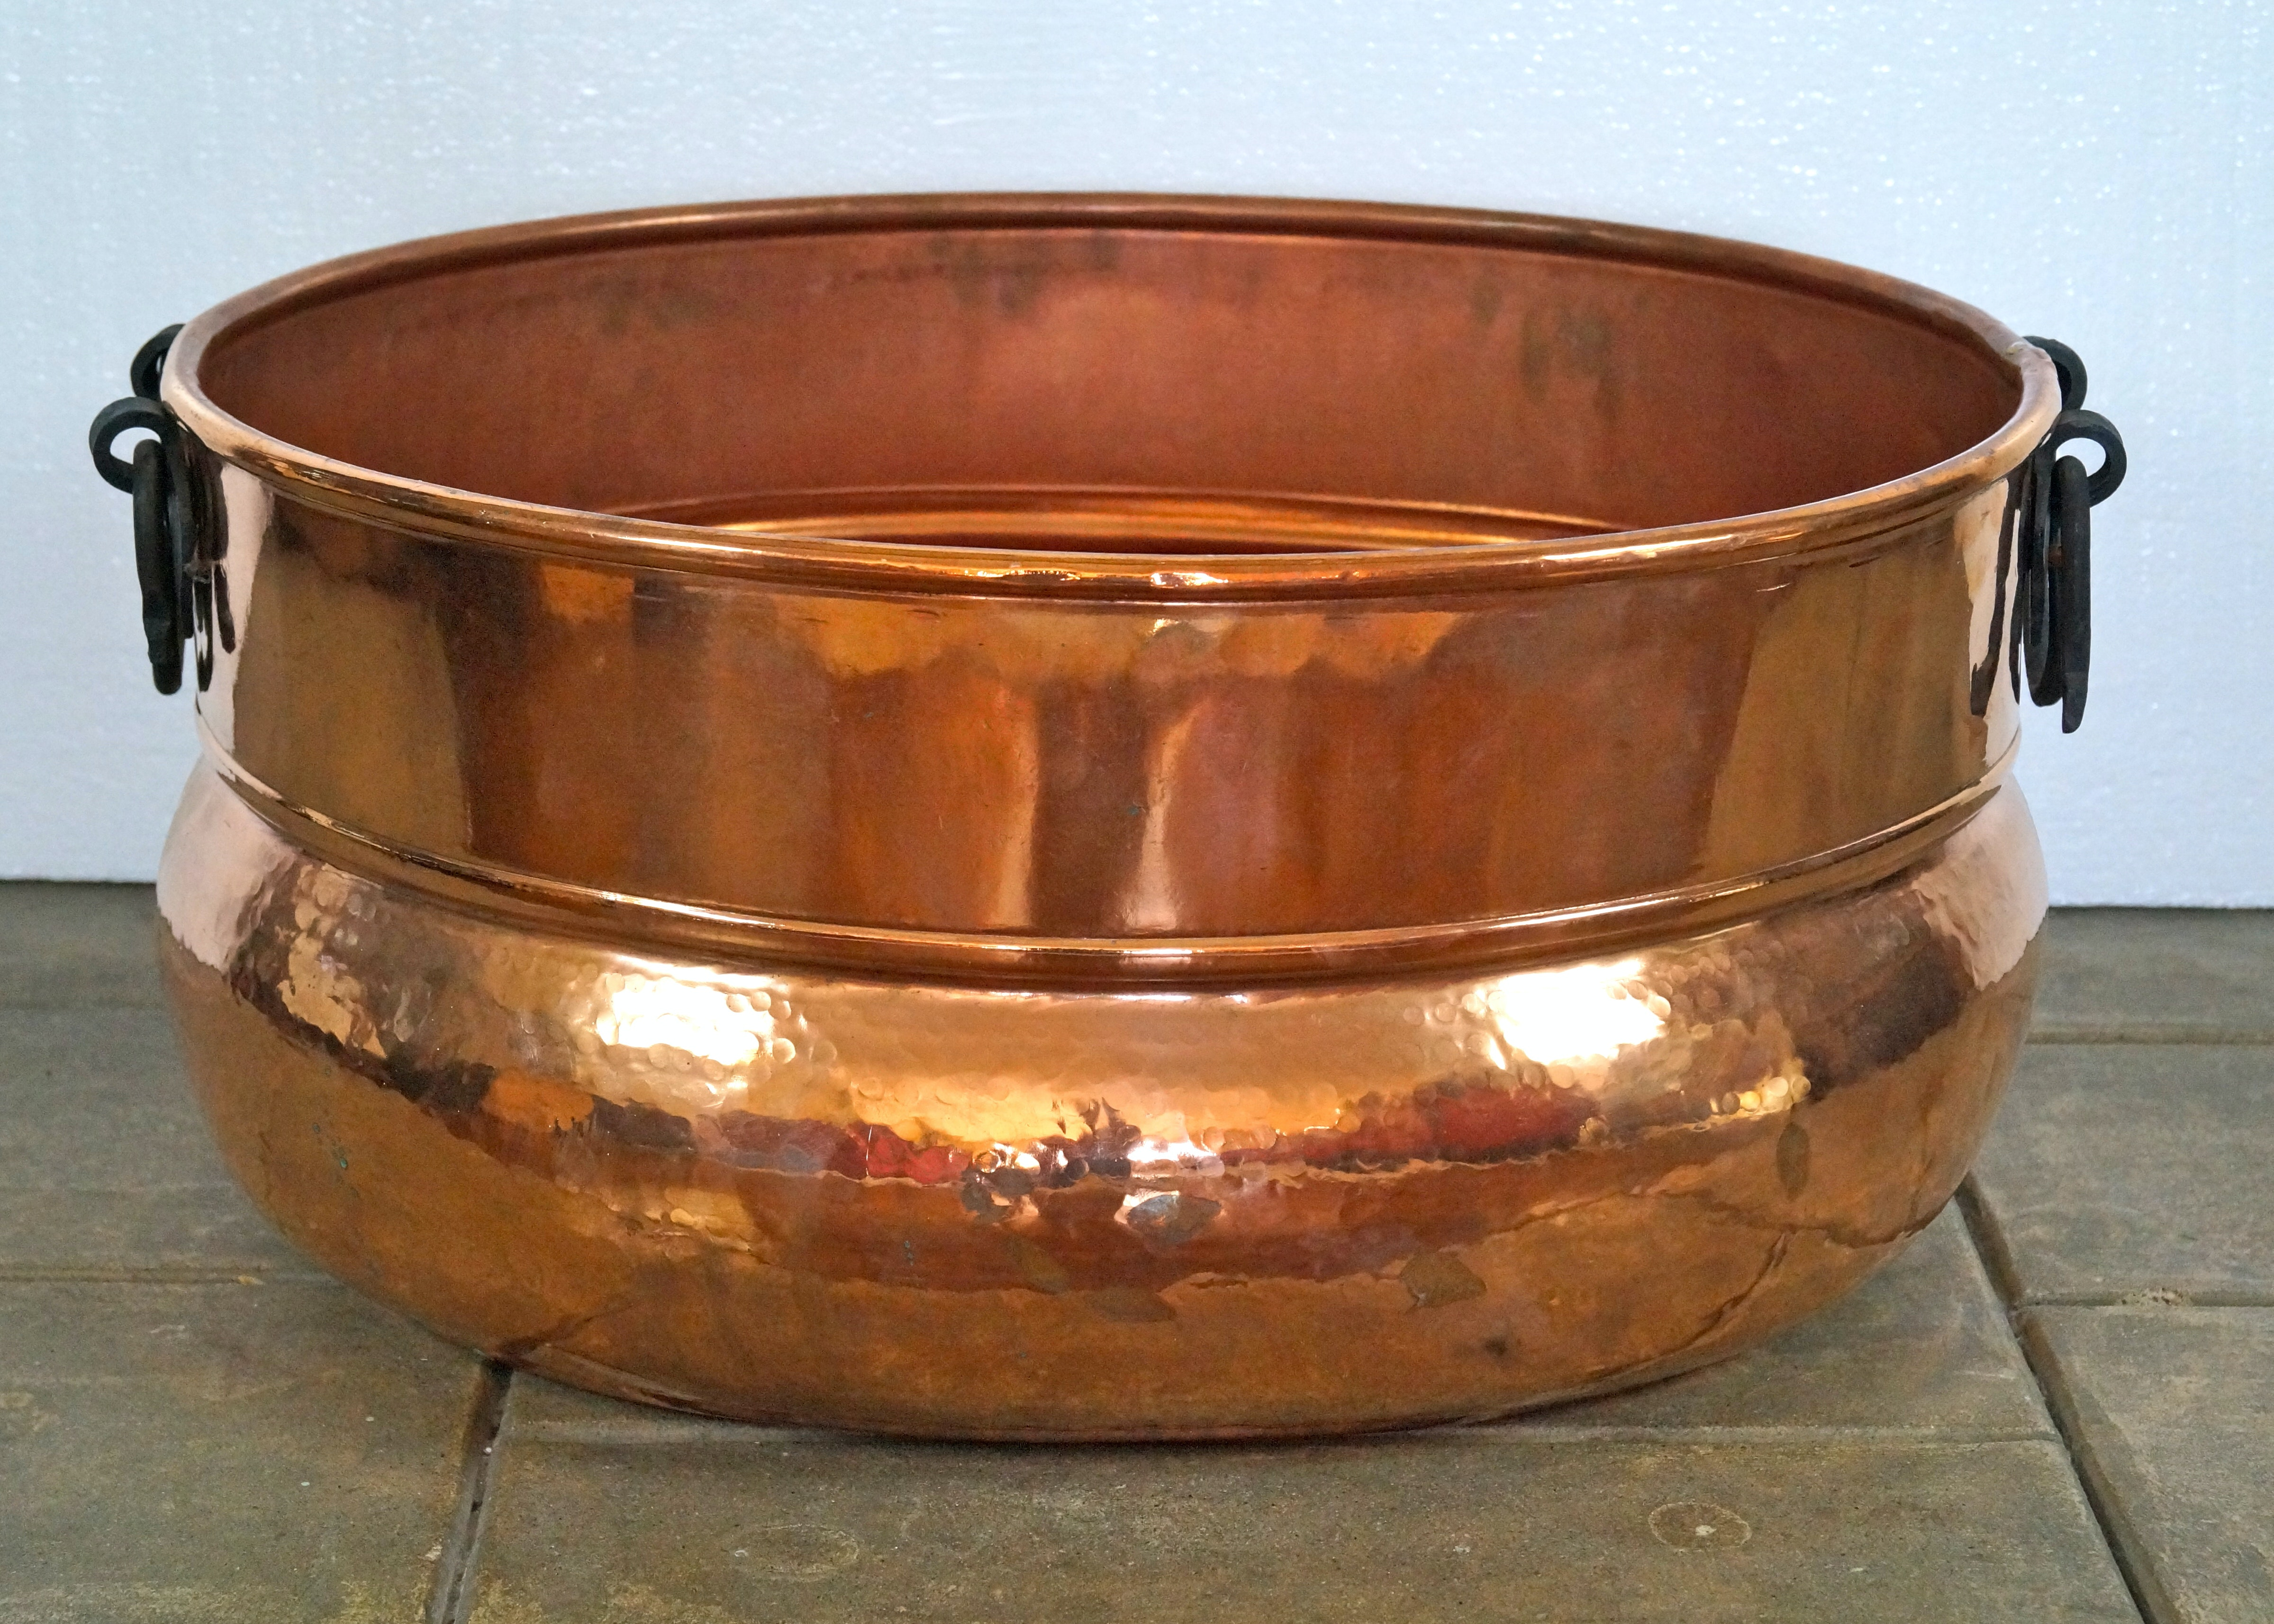 Hammered Copper Plated Beverage Tub With Wrought Iron Handles ...